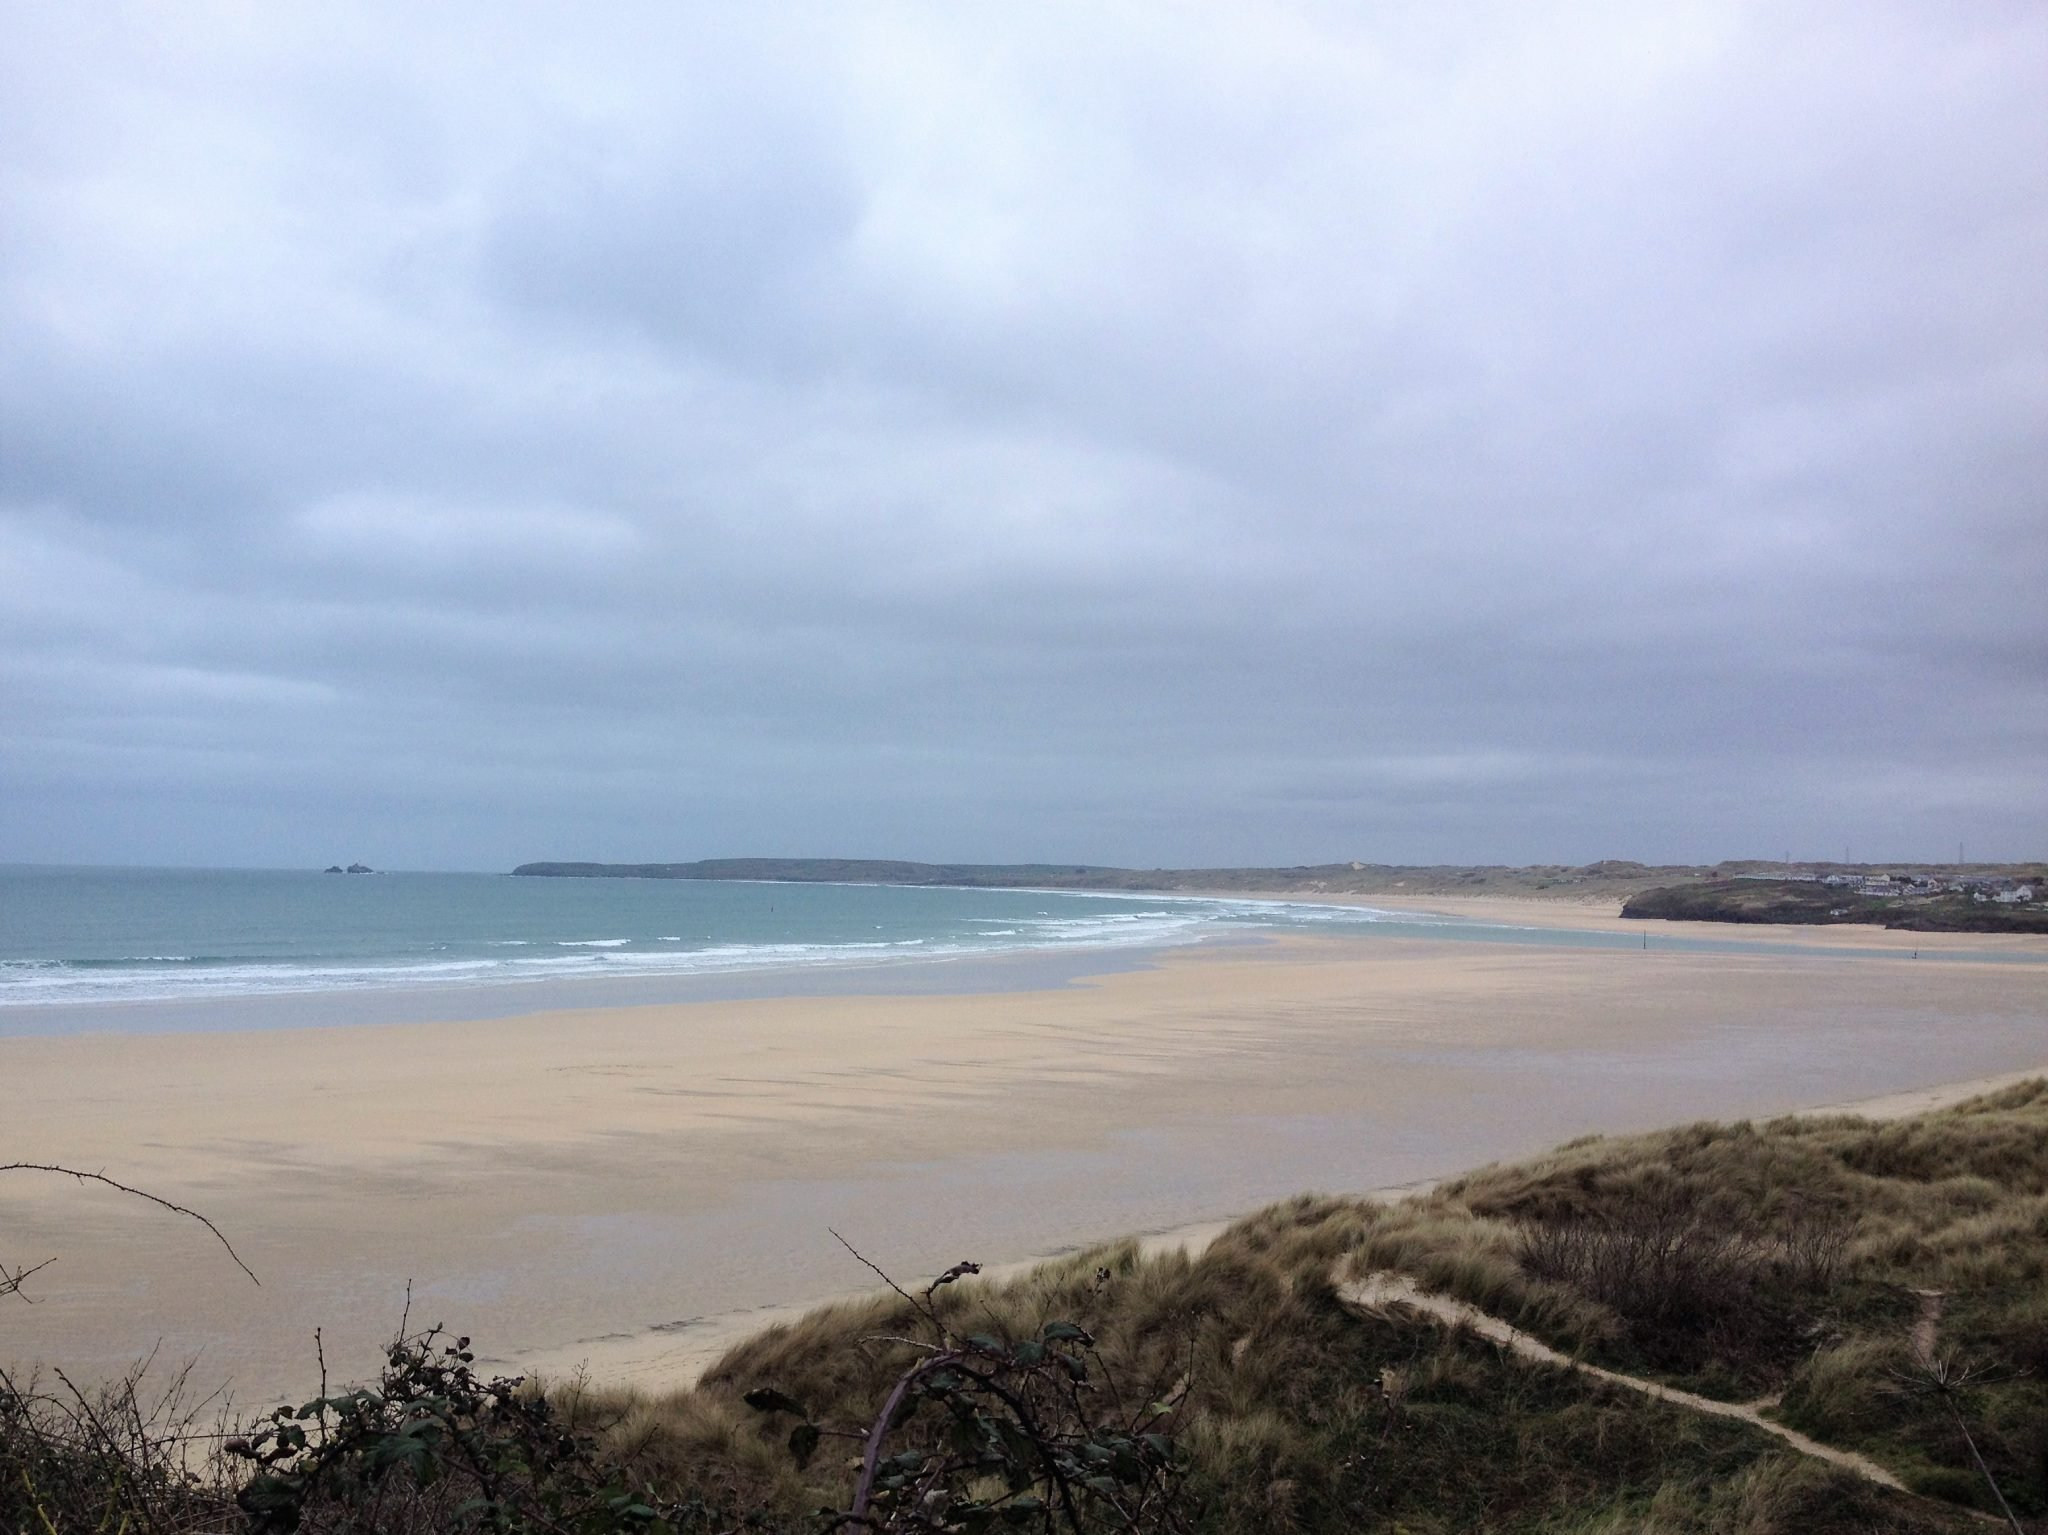 Porth Kidney Sands, towards Godrevy - looking across the Hayle Estuary. South West Coast Path, Cornwall, UK. Copyright Stephanie Boon, 2017. All Rights Reserved.